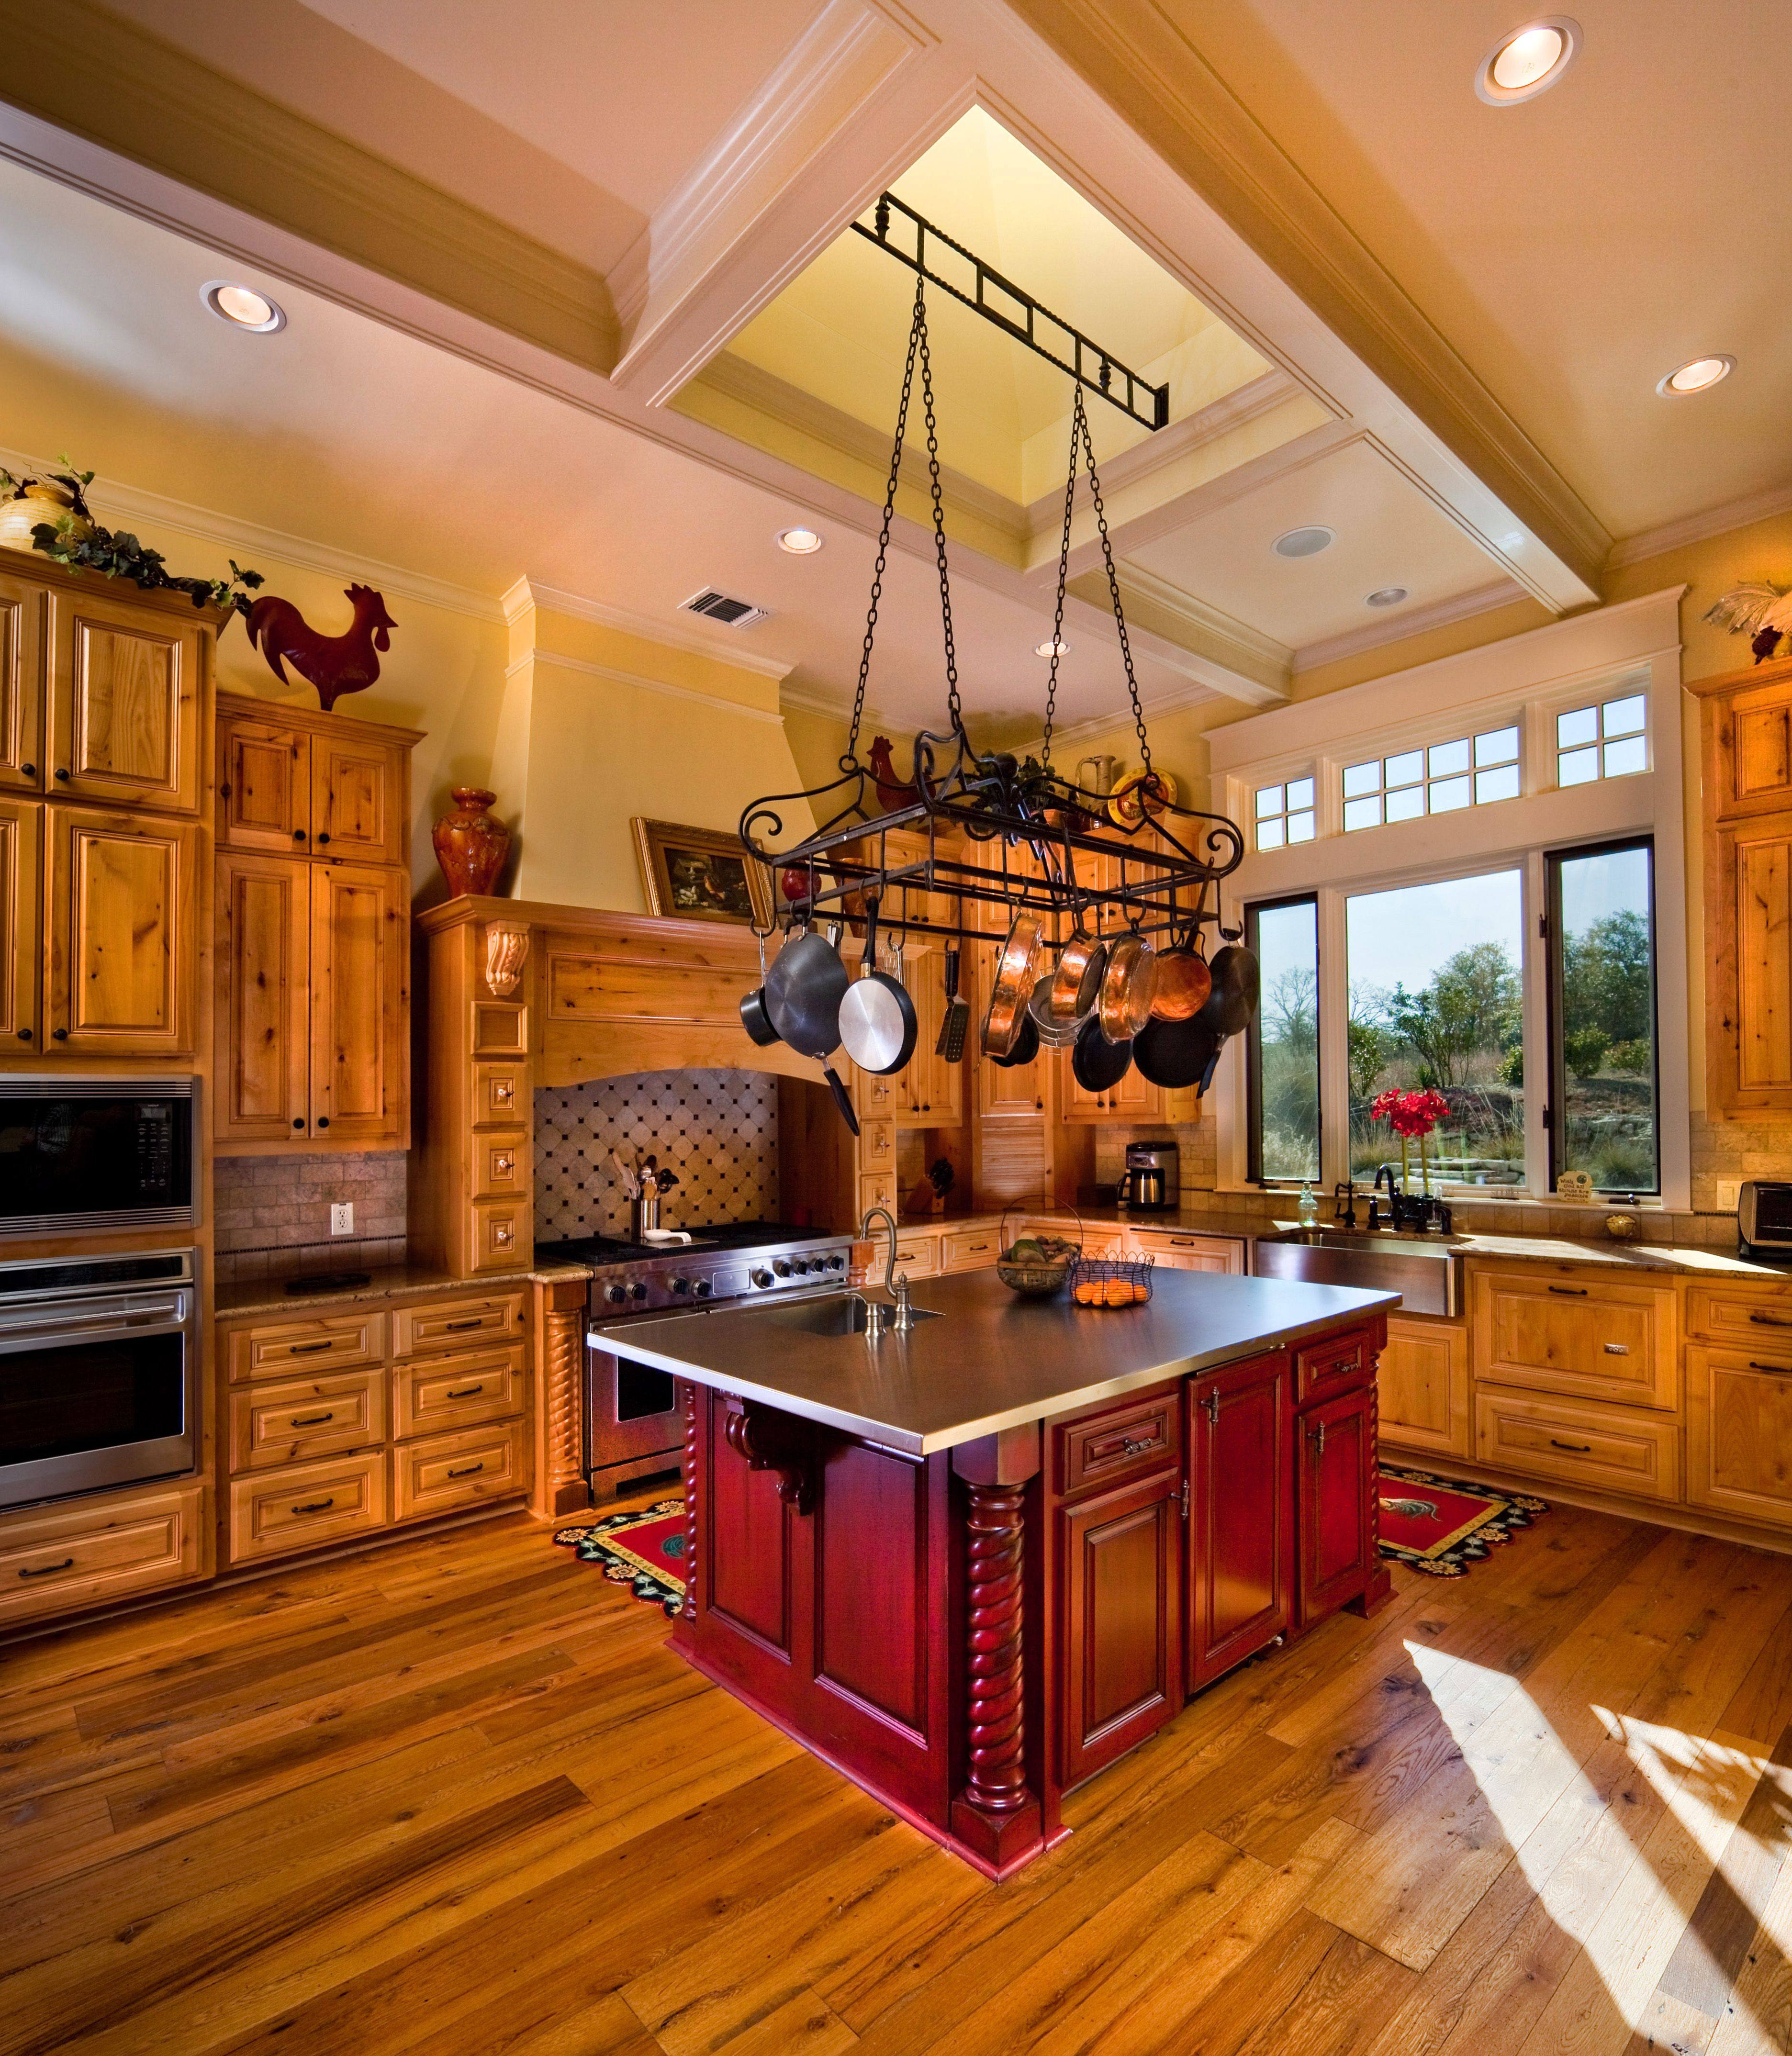 Kitchen Cabinets Red Oak Floors Knotty Alder Cabinets And Reclaimed Oak Flooring Are Elegant In